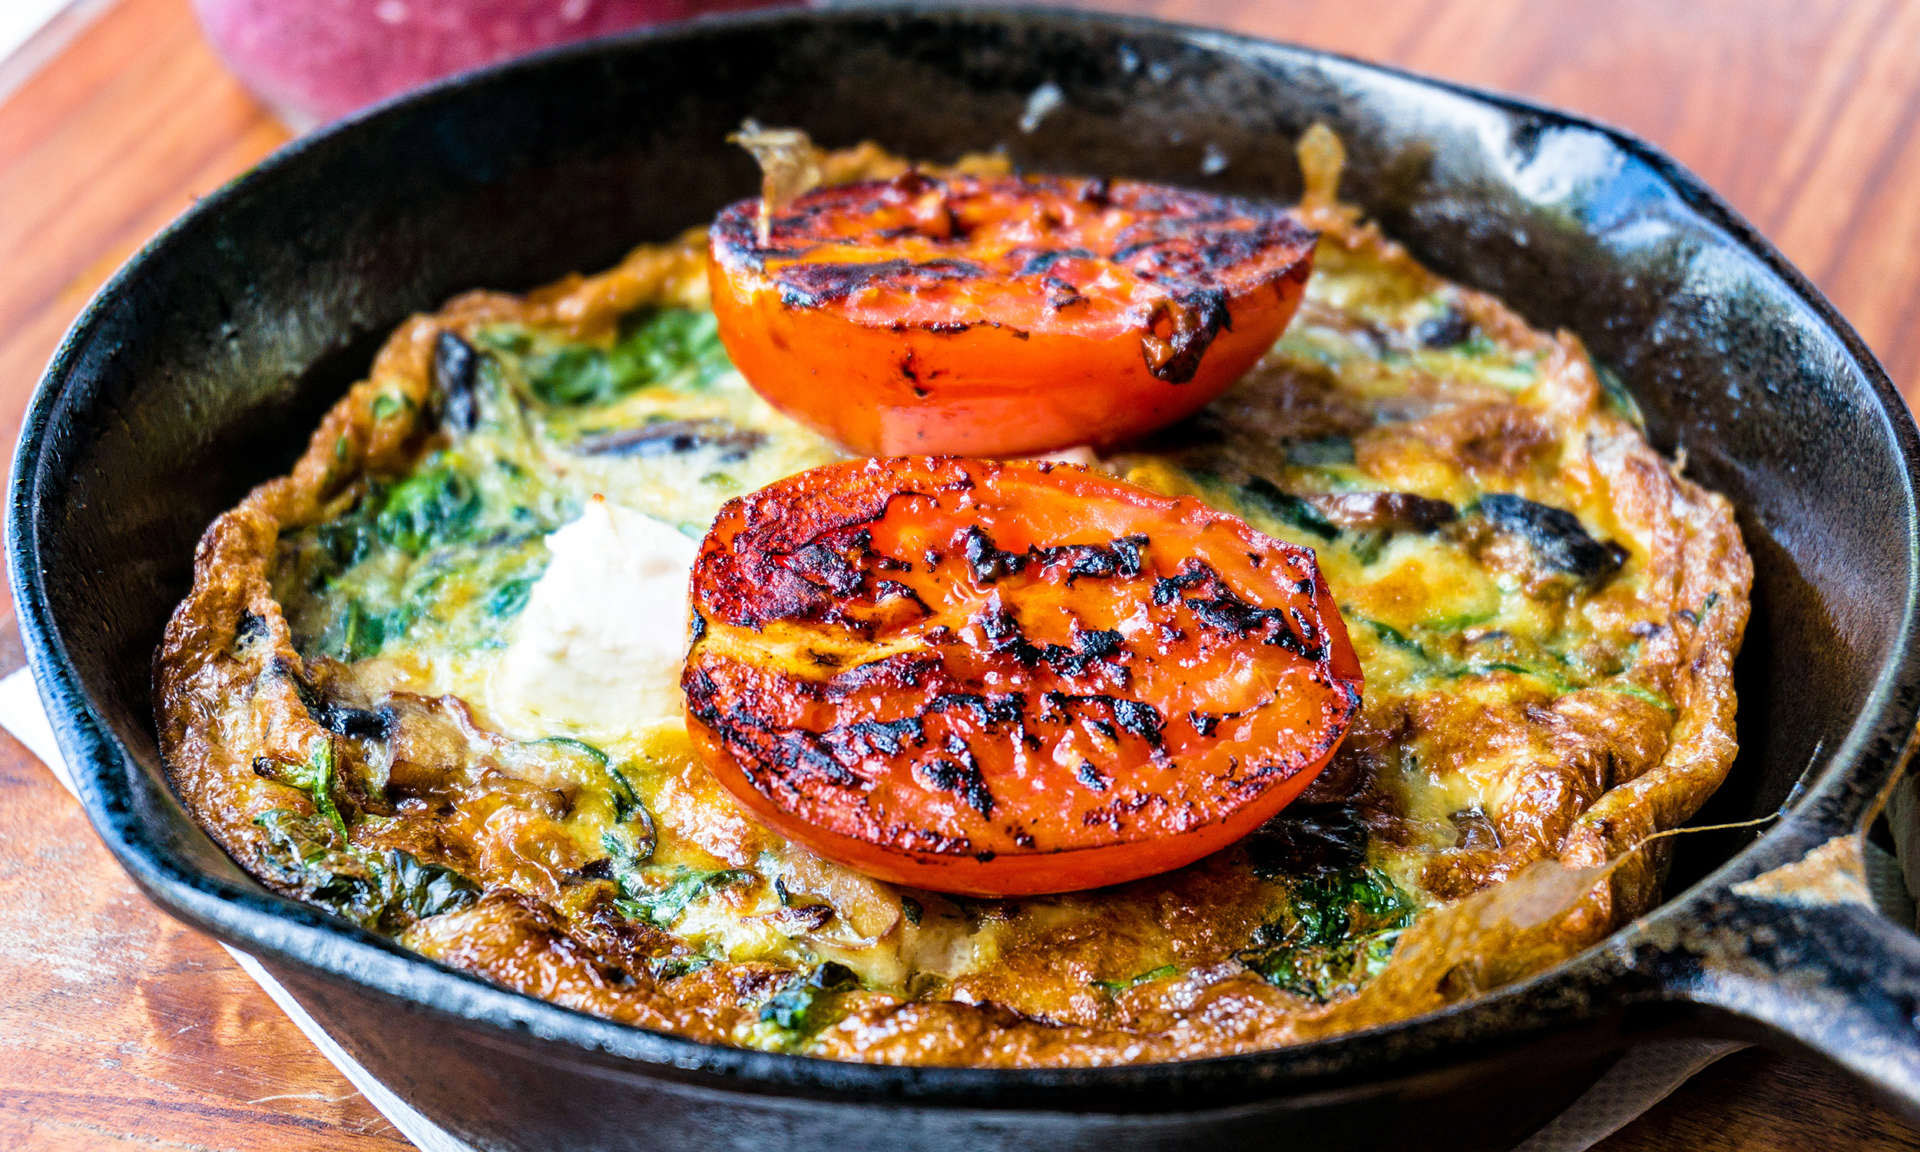 6 Healthy One-Pot Breakfasts to Make Ahead and Eat All Week Long